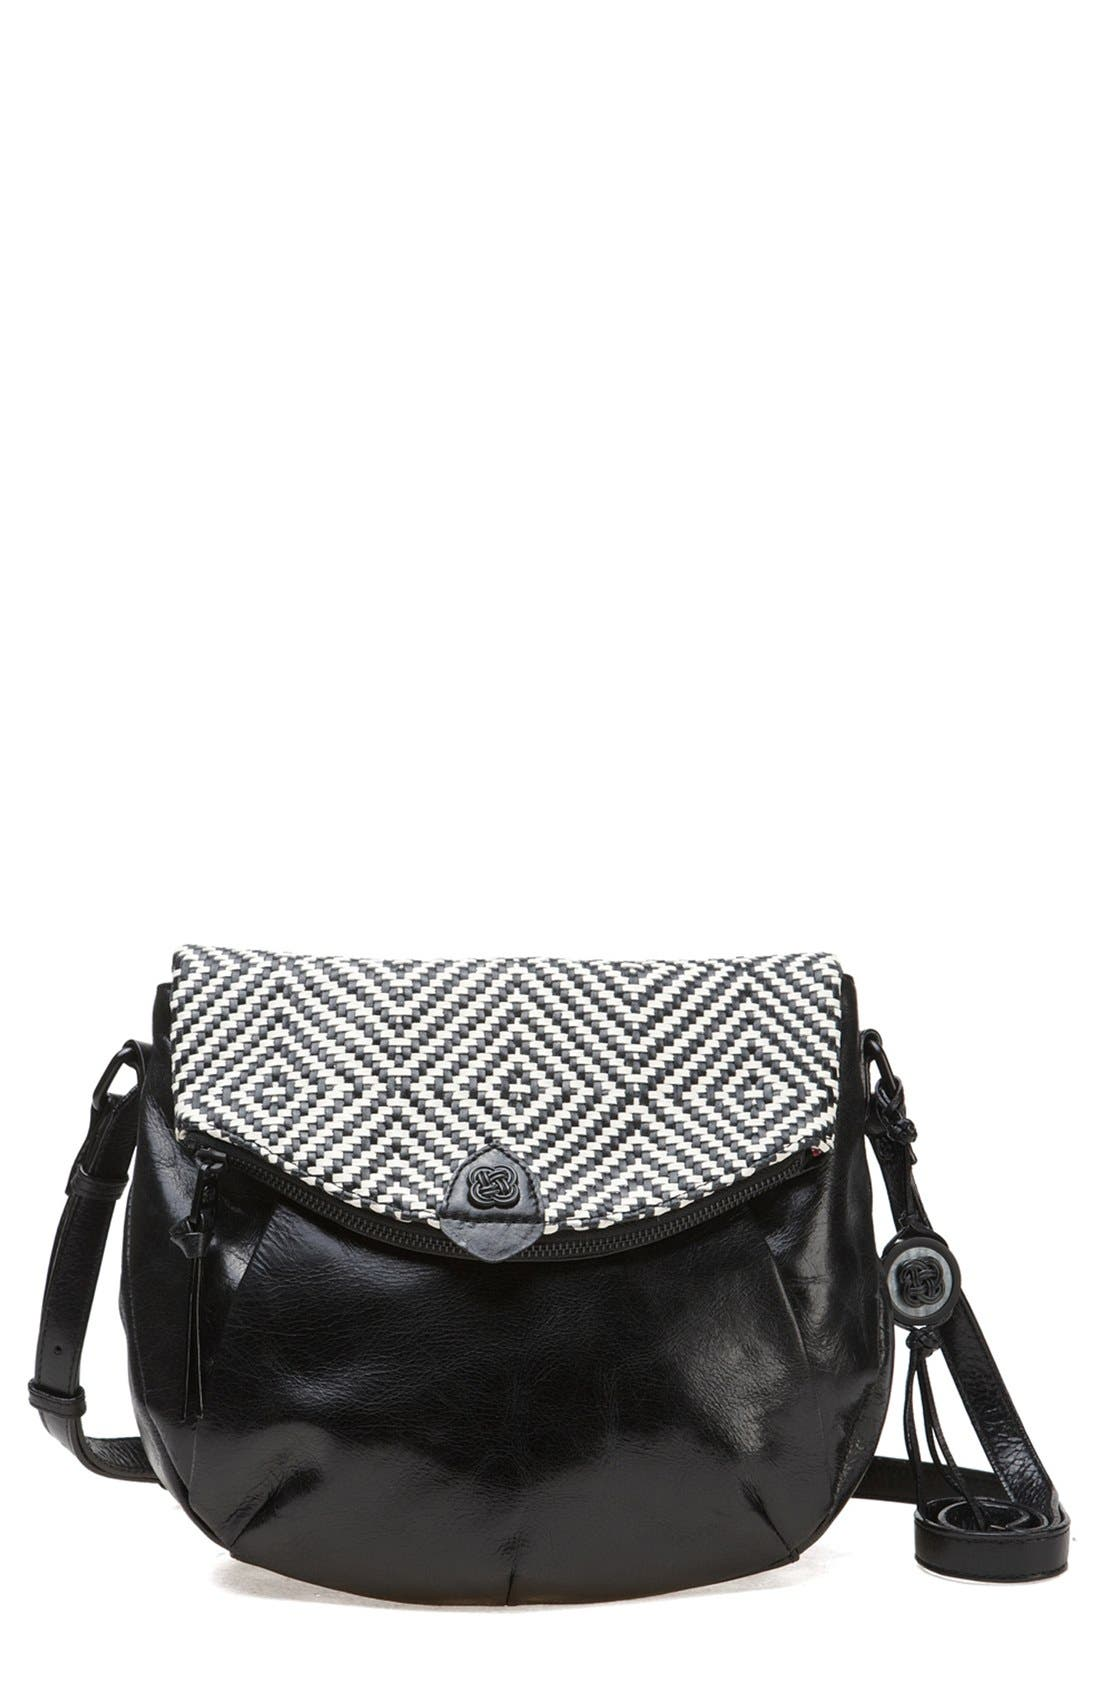 Main Image - Elliott Lucca Leather Crossbody Bag